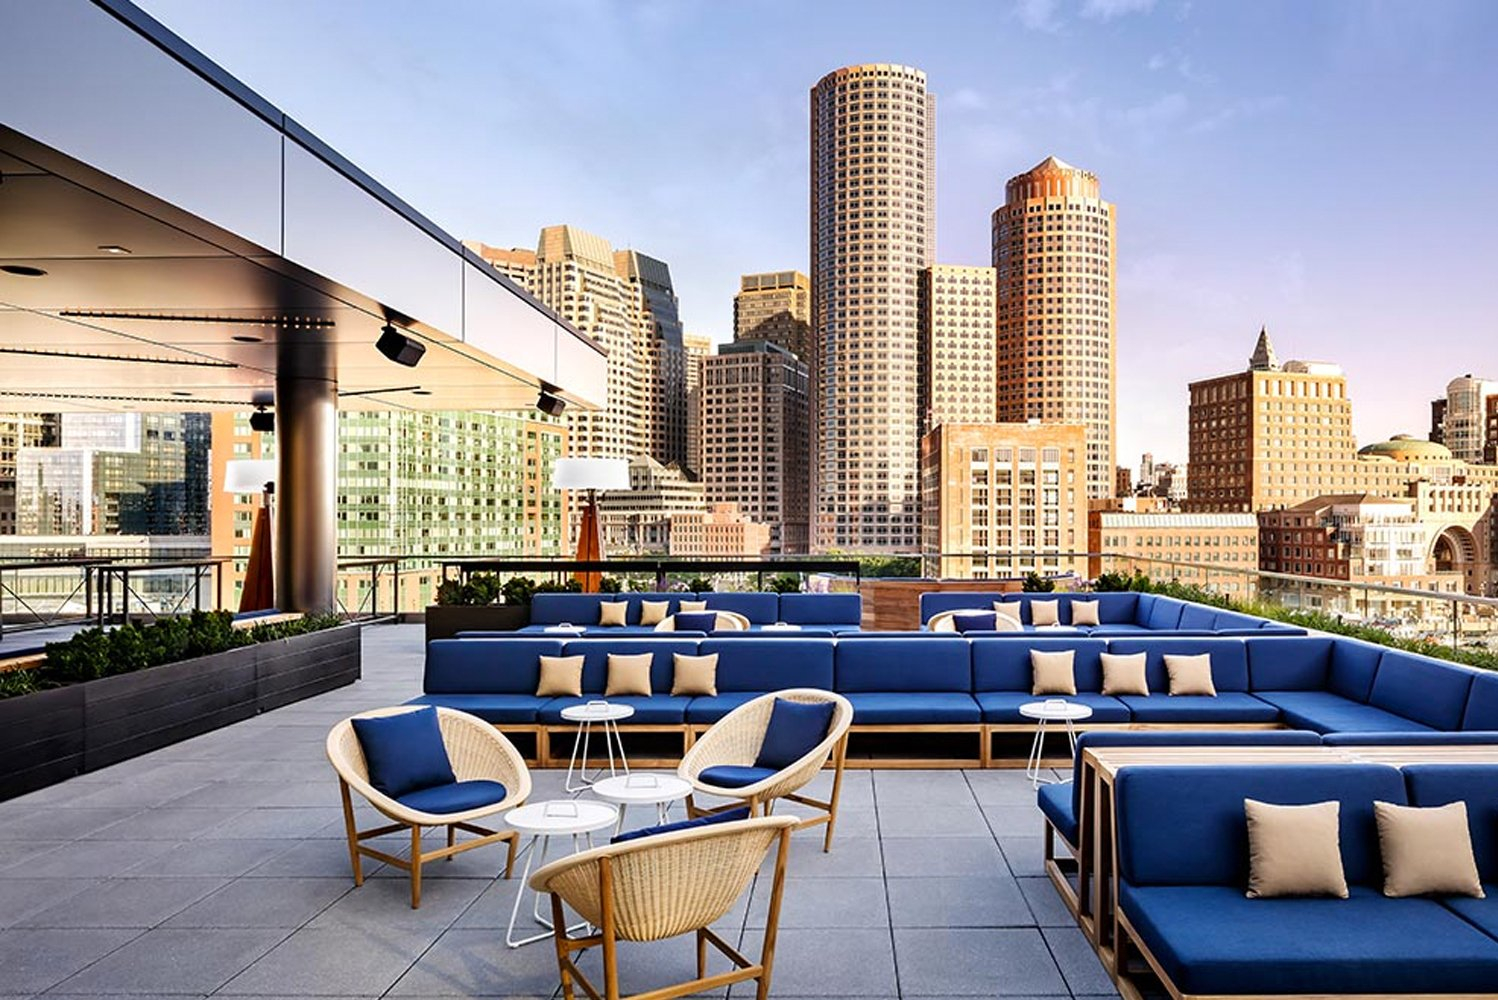 The Envoy Hotel in Boston's Seaport District completed a $4 million expansion and renovation of Lookout Rooftop.